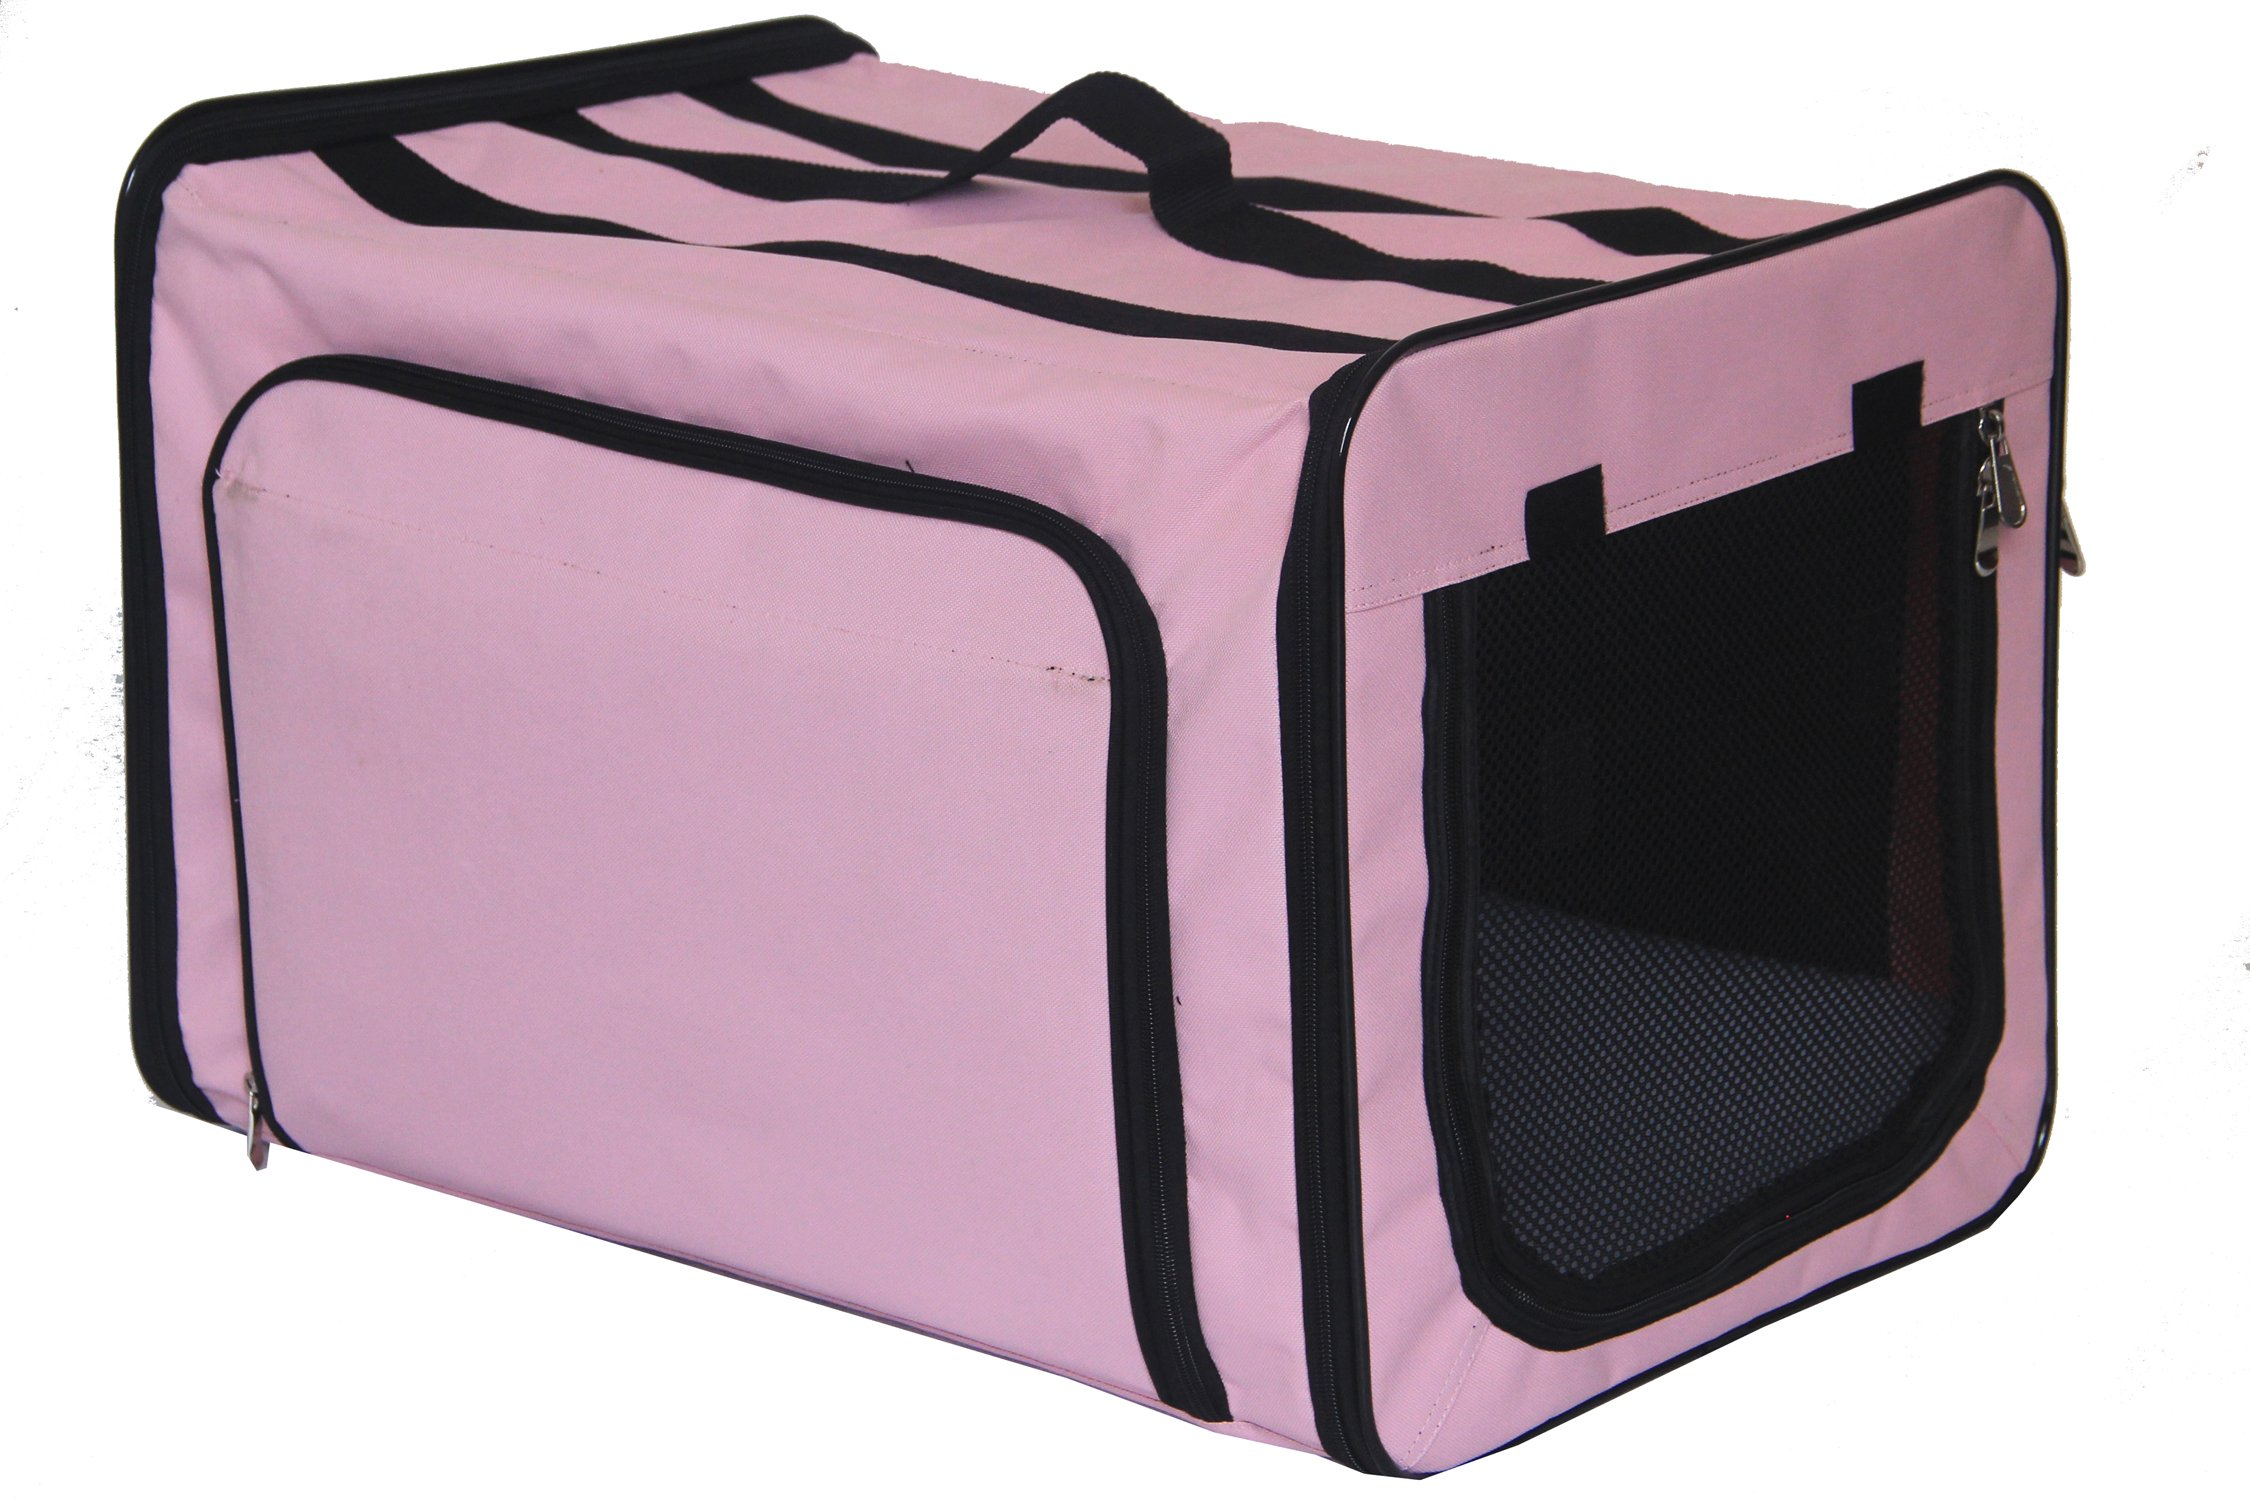 Pet Life 'Capacious' Dual-Sided Expandable Spacious Wire Folding Collapsible Lightweight Pet Dog Crate Carrier House, X-Large, Pink by Pet Life (Image #3)